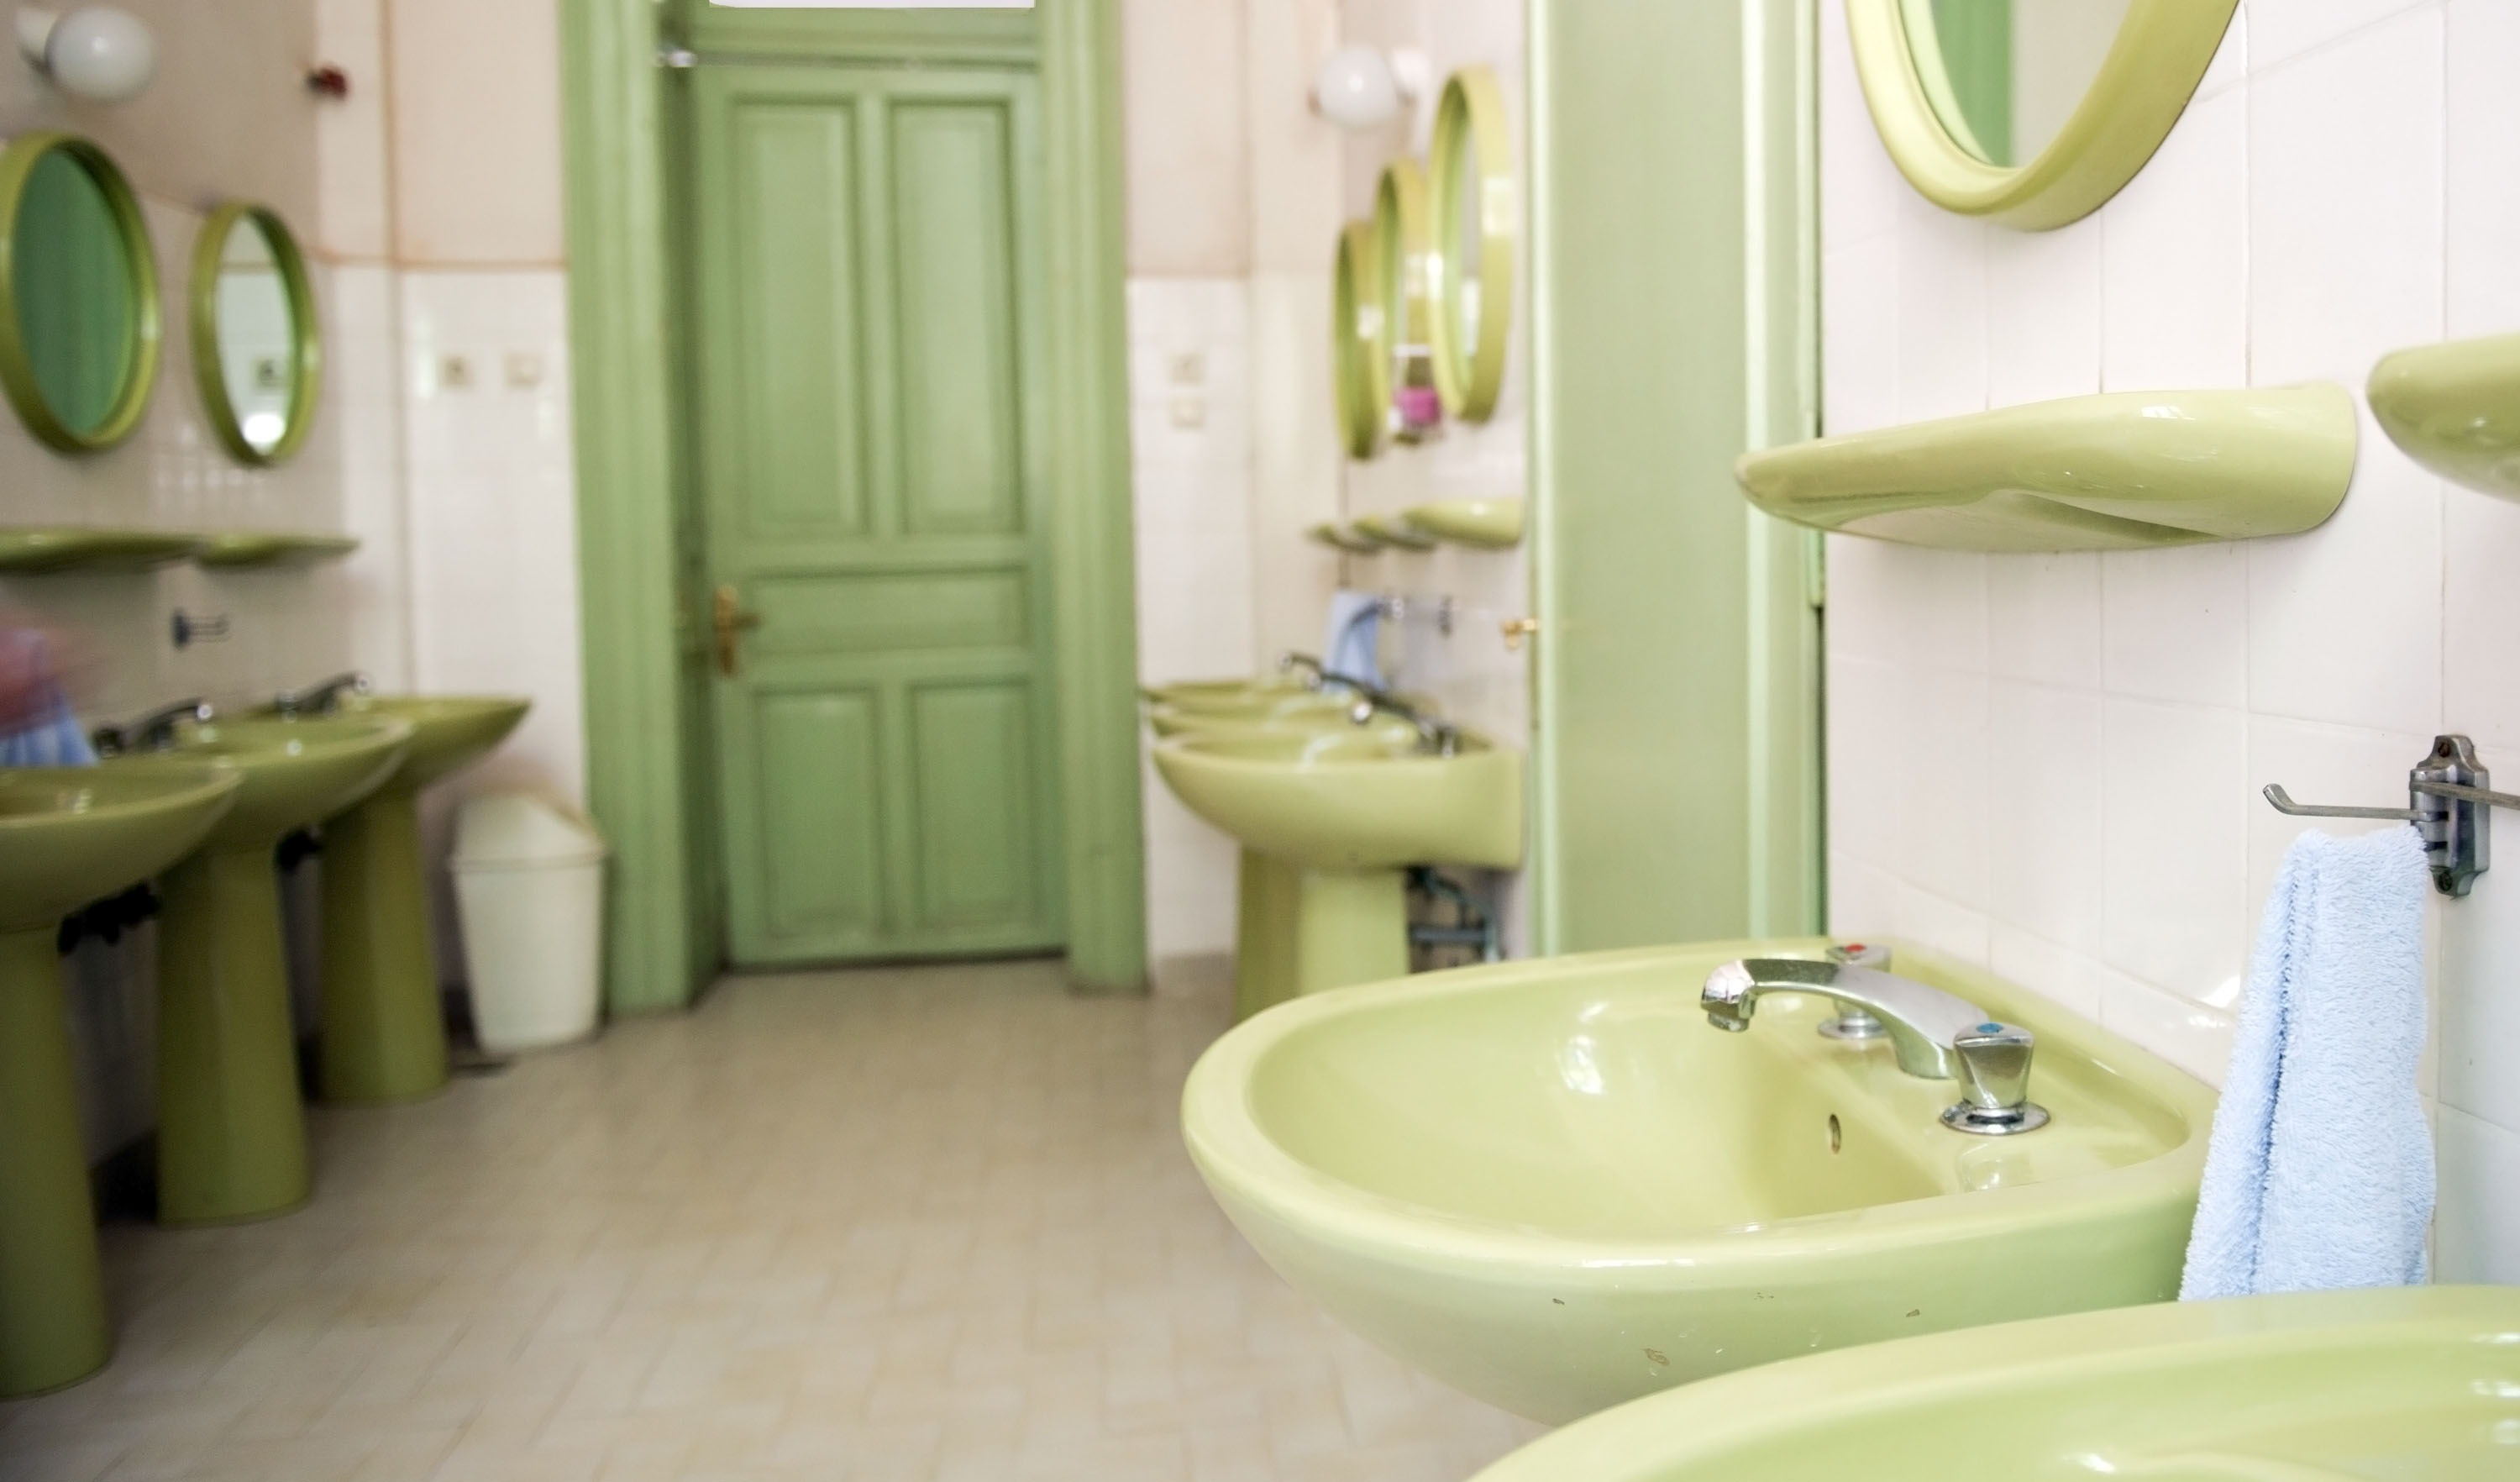 Dating from the 1970s green bathroom